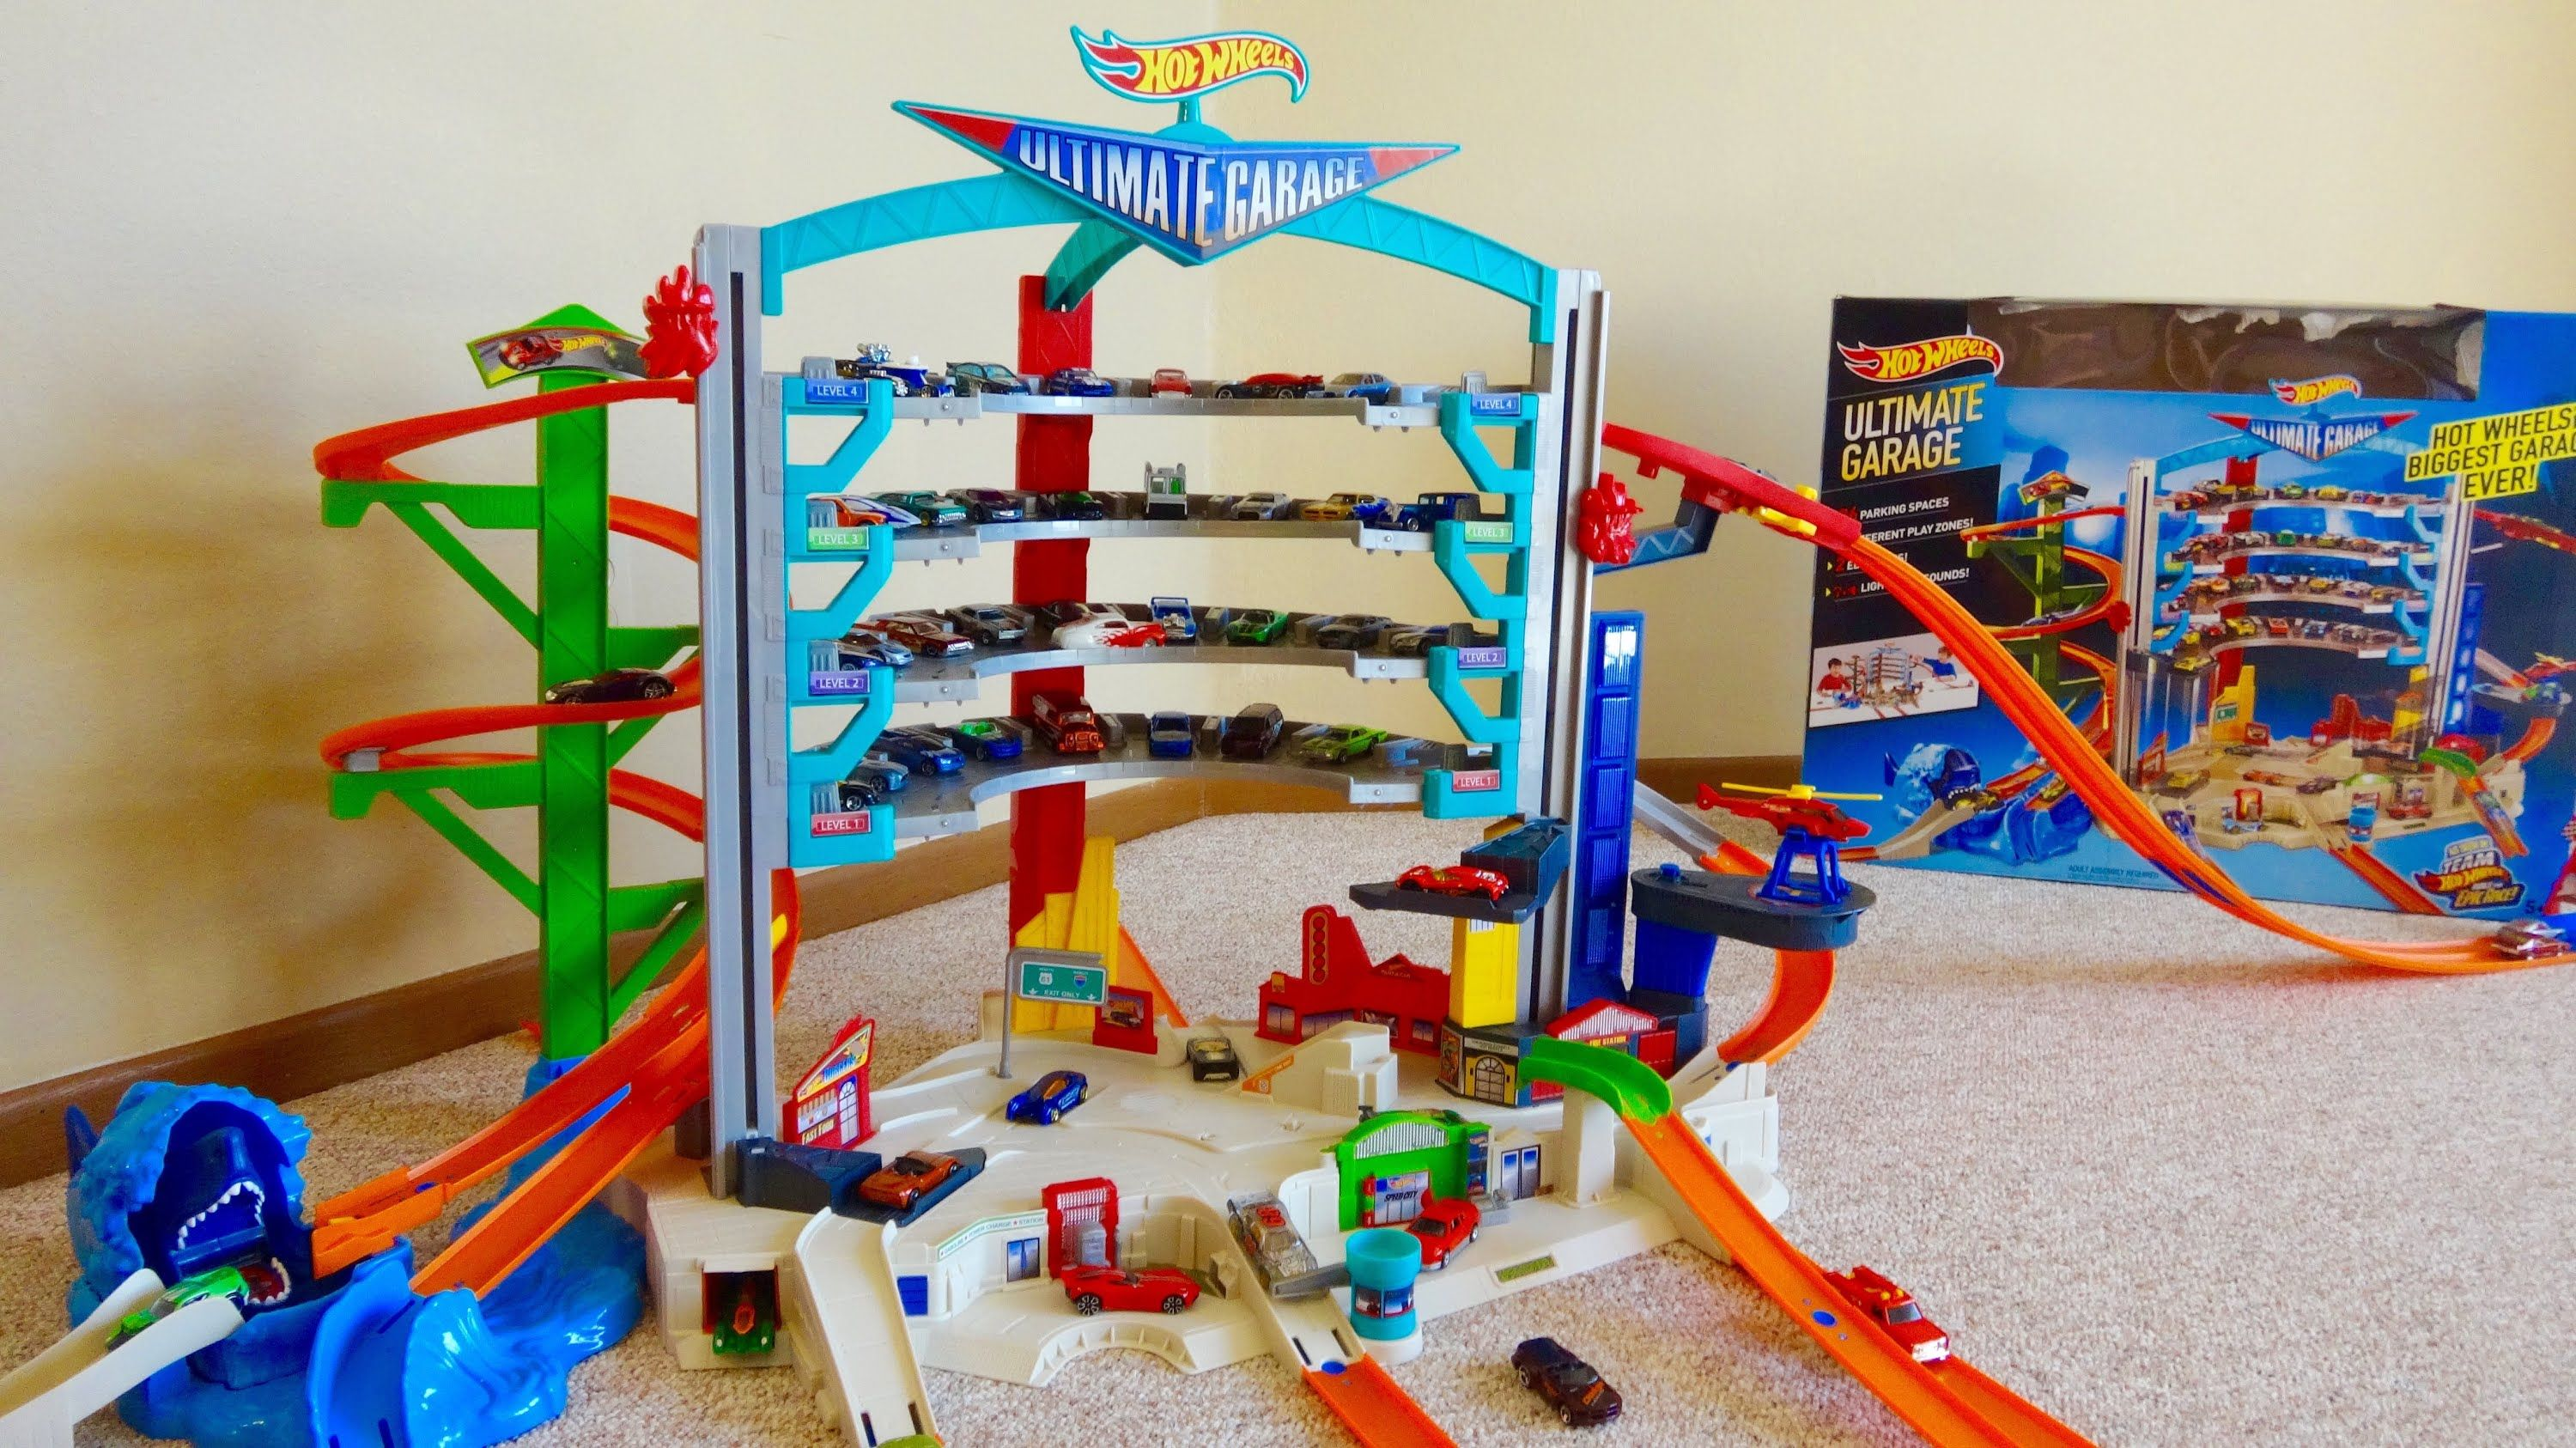 Hot Wheels Ultimate Garage Playset With Attack Shark Spiral Ramp